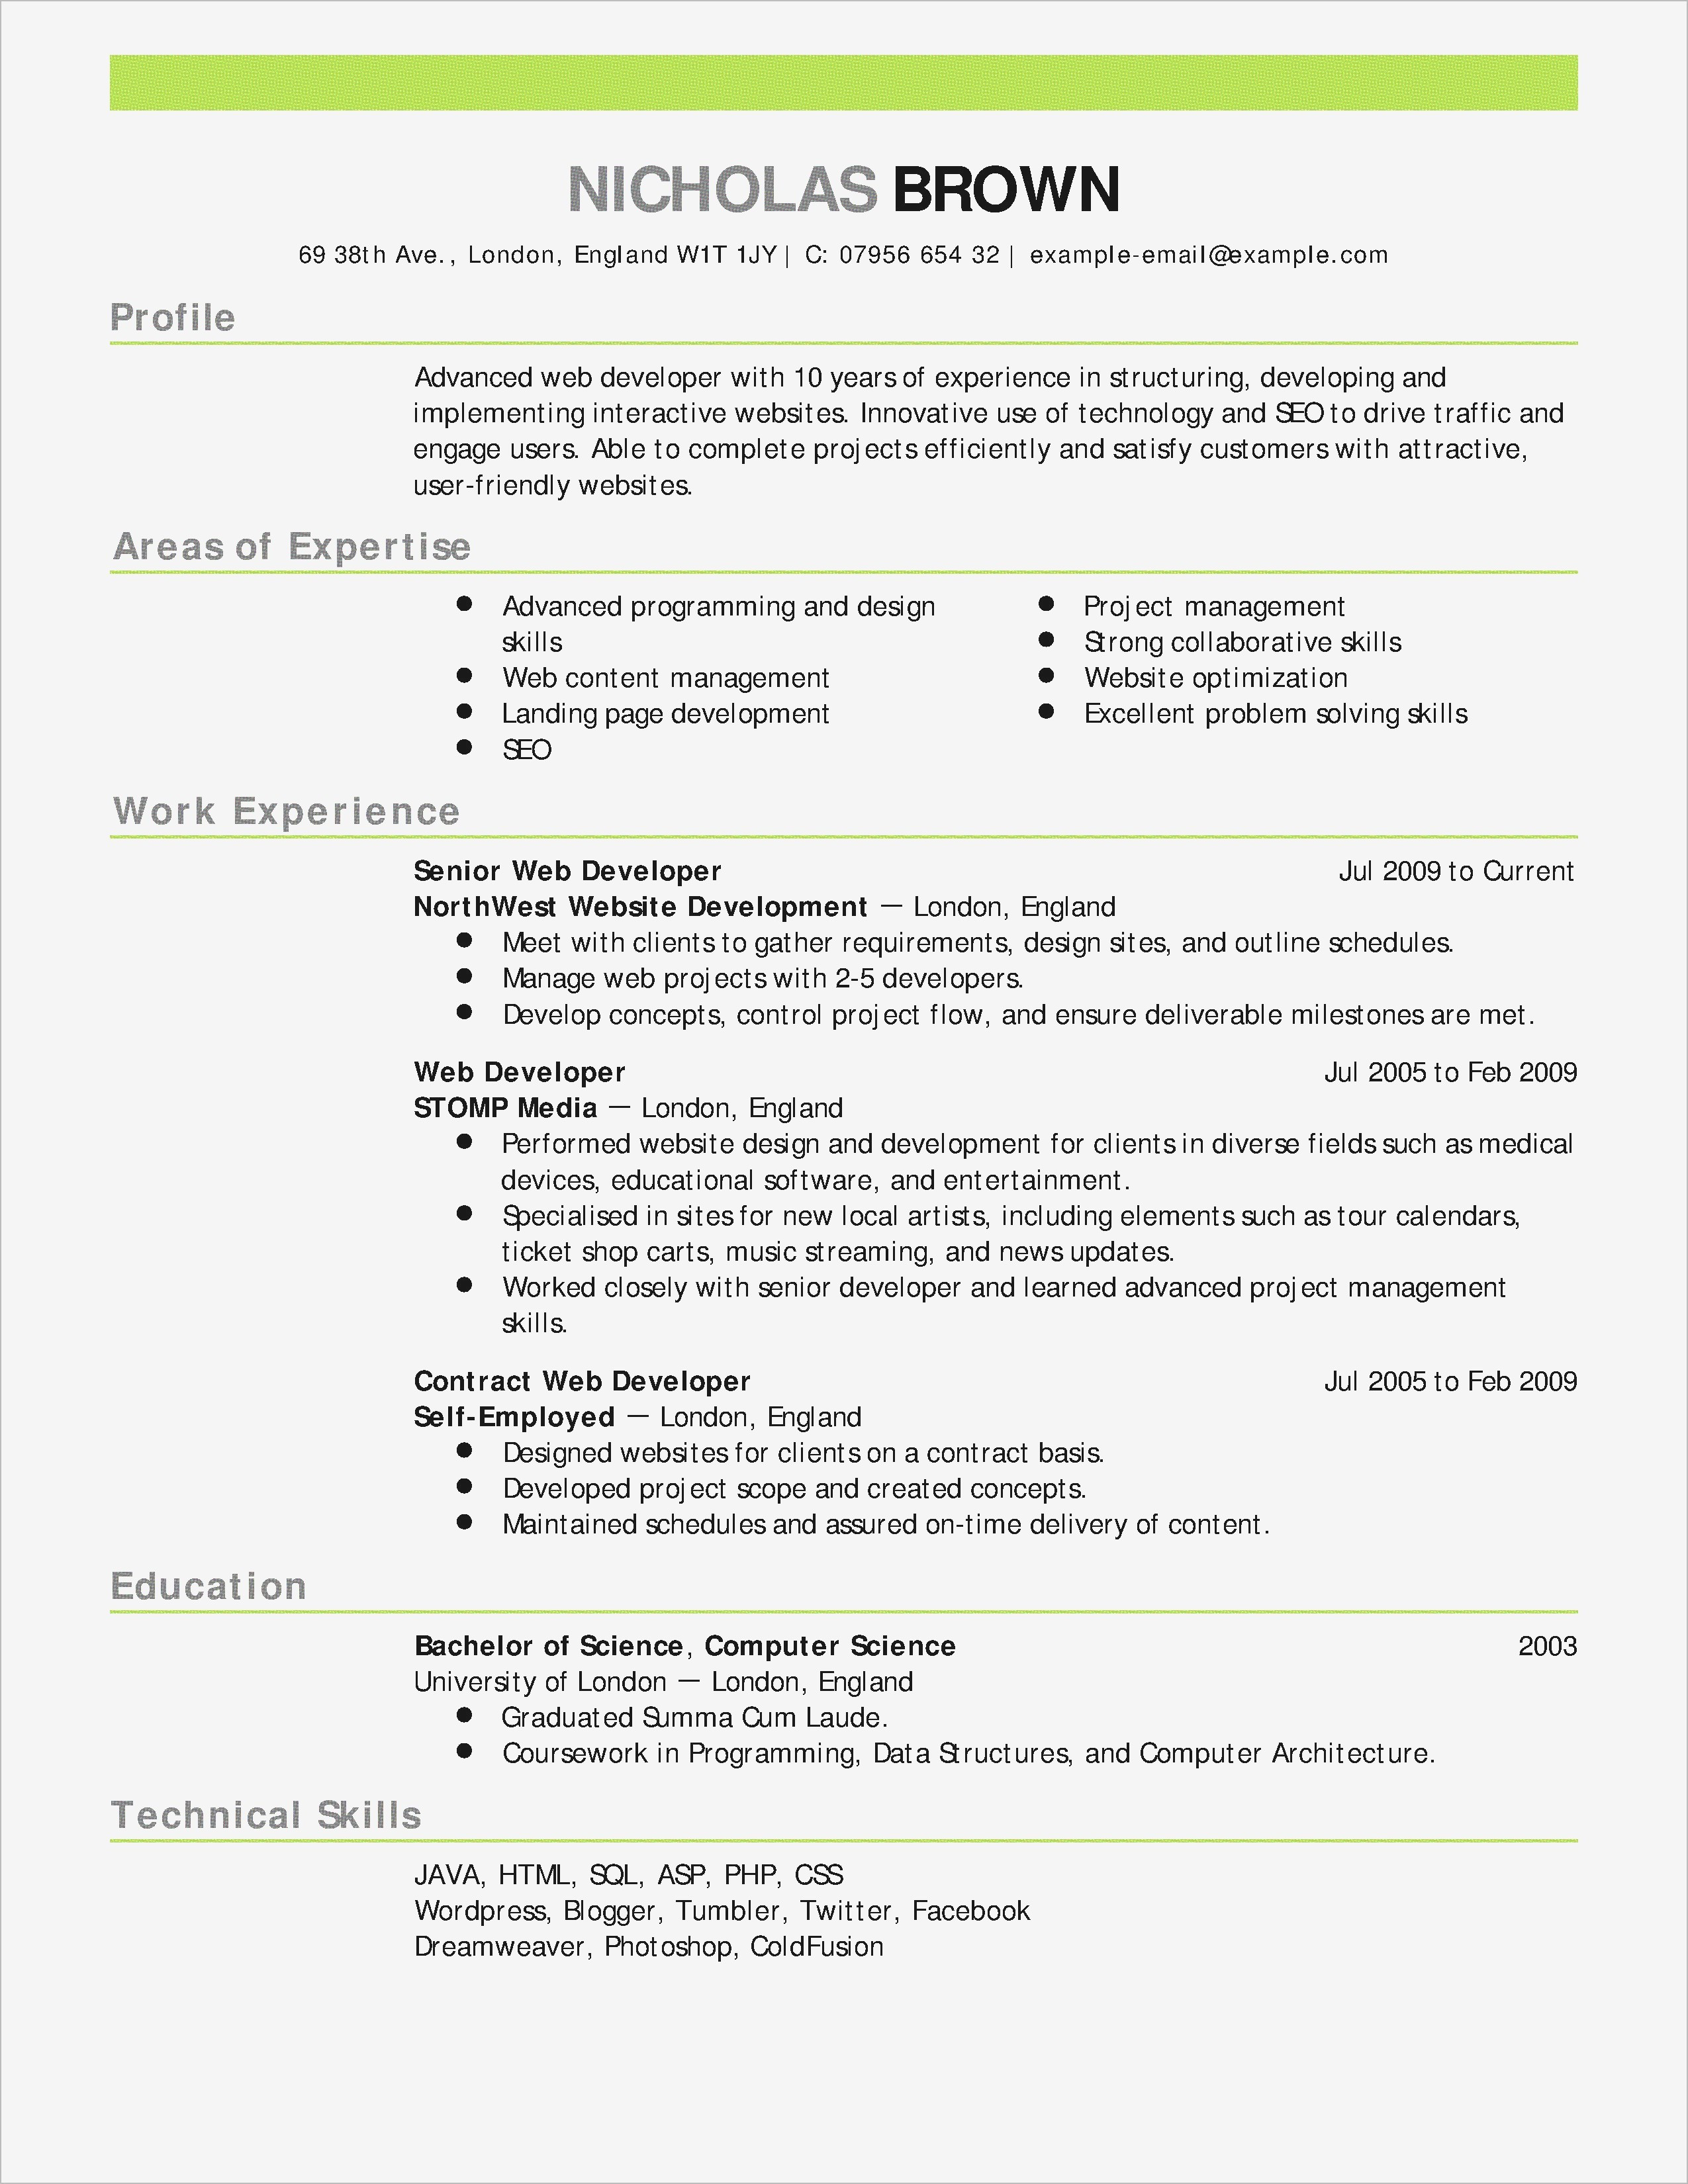 Paralegal Cover Letter Template - Maintenance Experience Resume Reference Elegant Cover Letter Writing